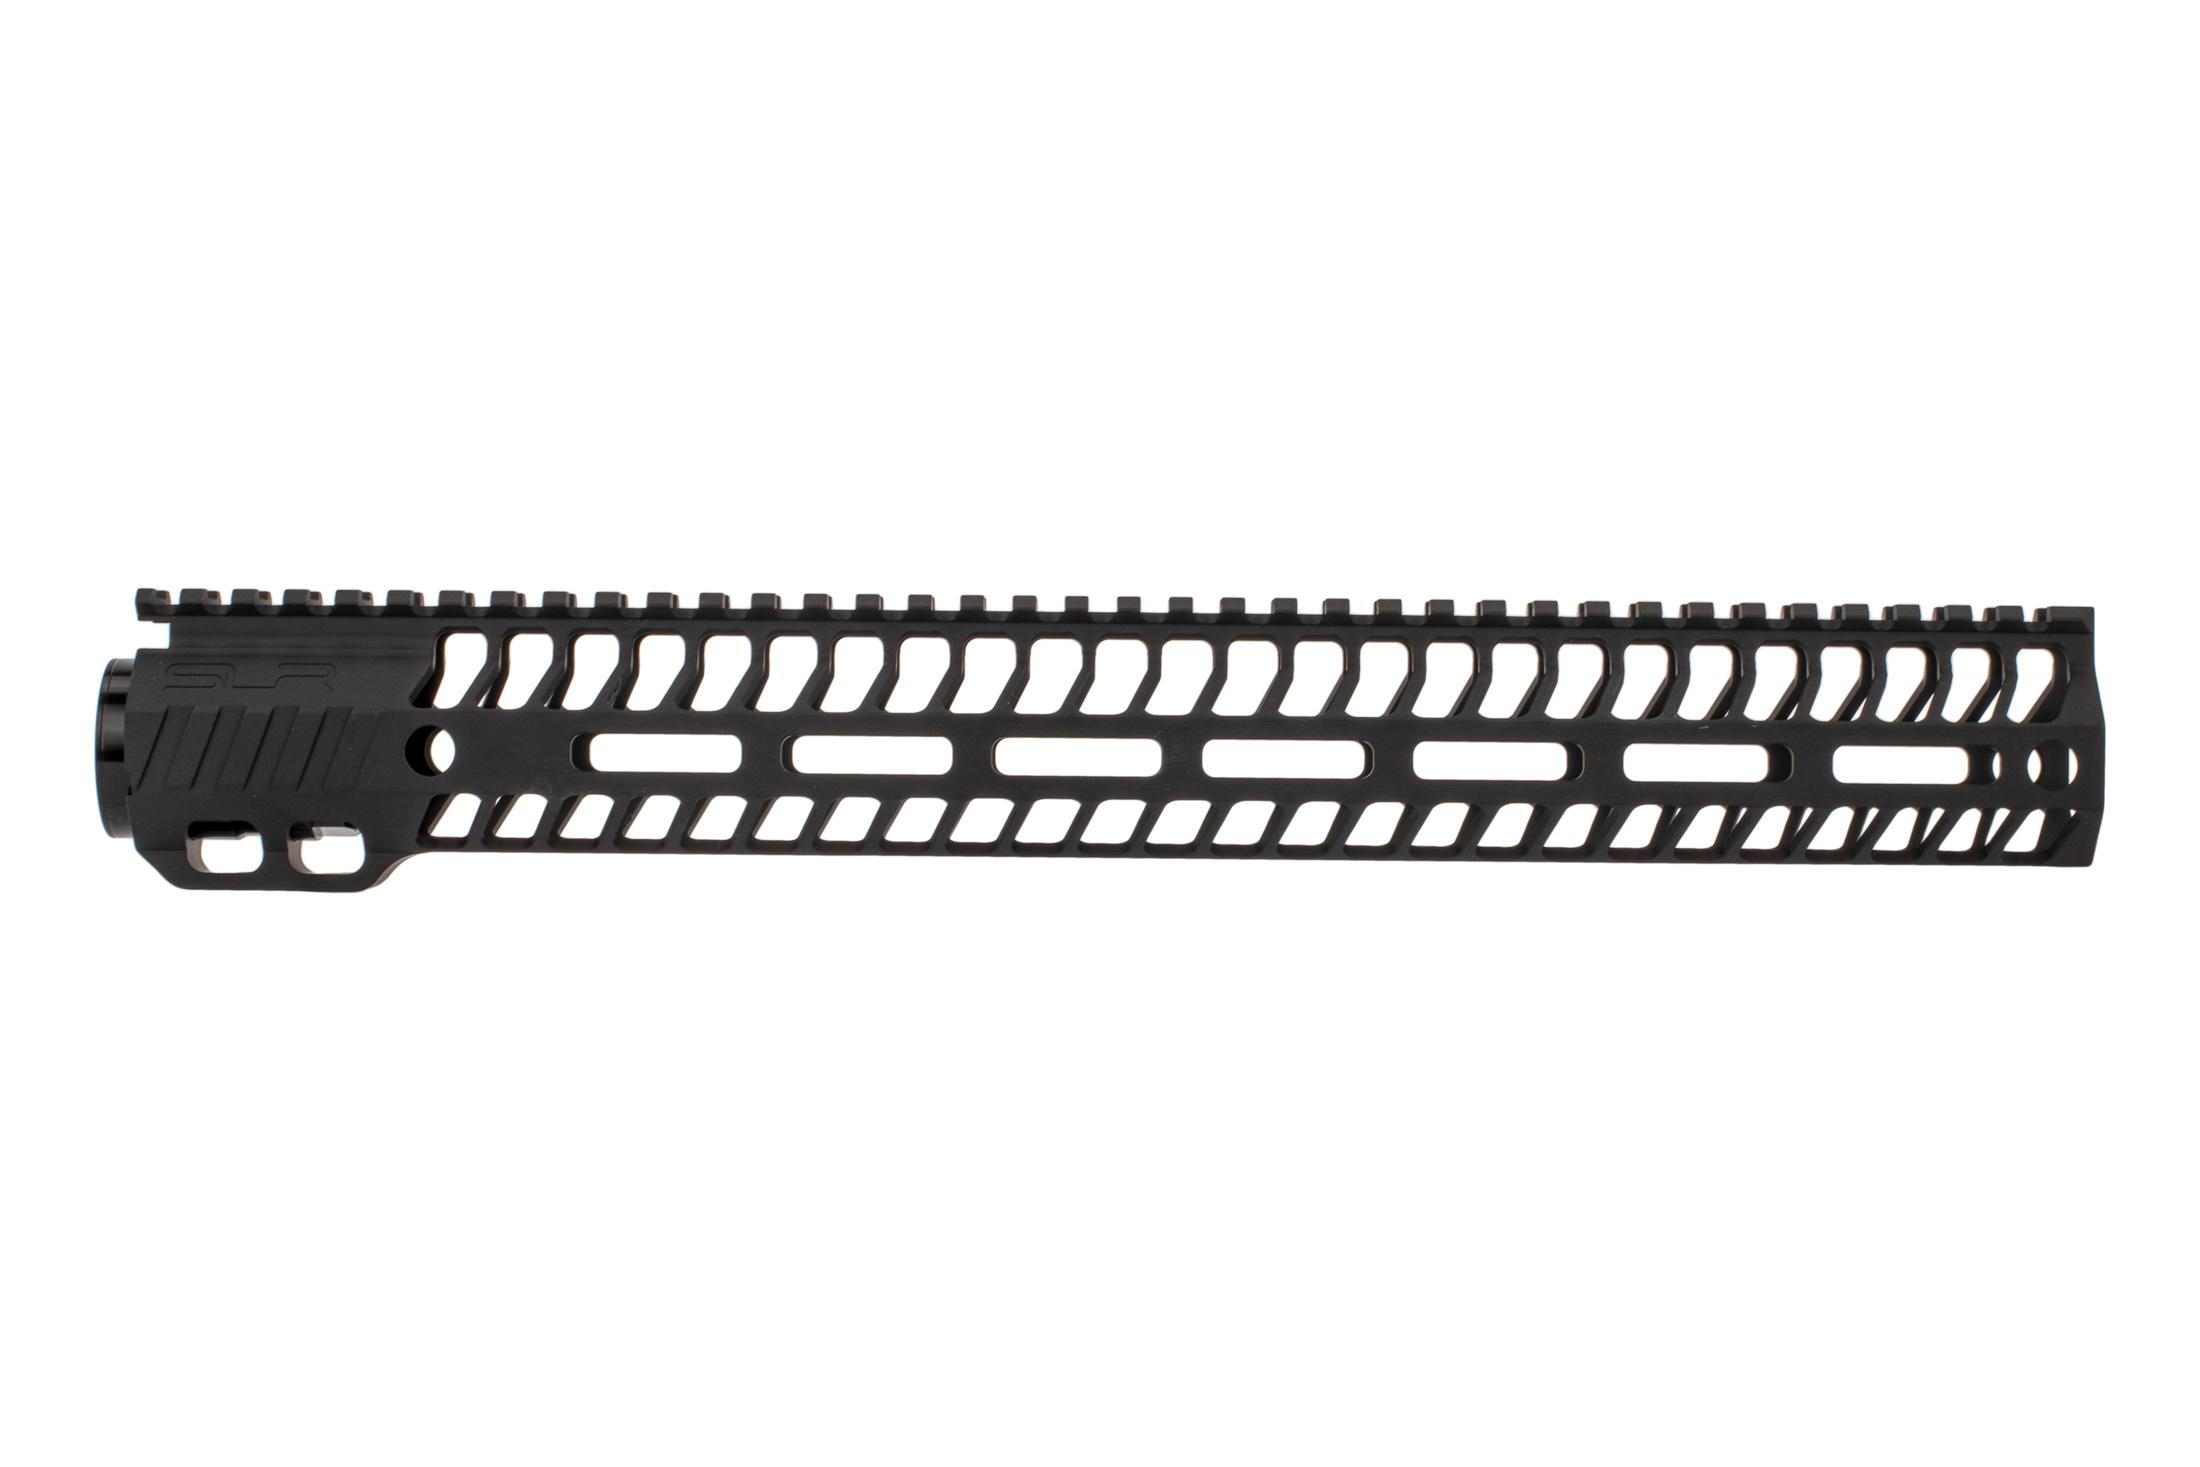 SLR Rifleworks 14.87 HELIX AR-15 handguard with full length top rail features M-LOK on four sides and a black finish